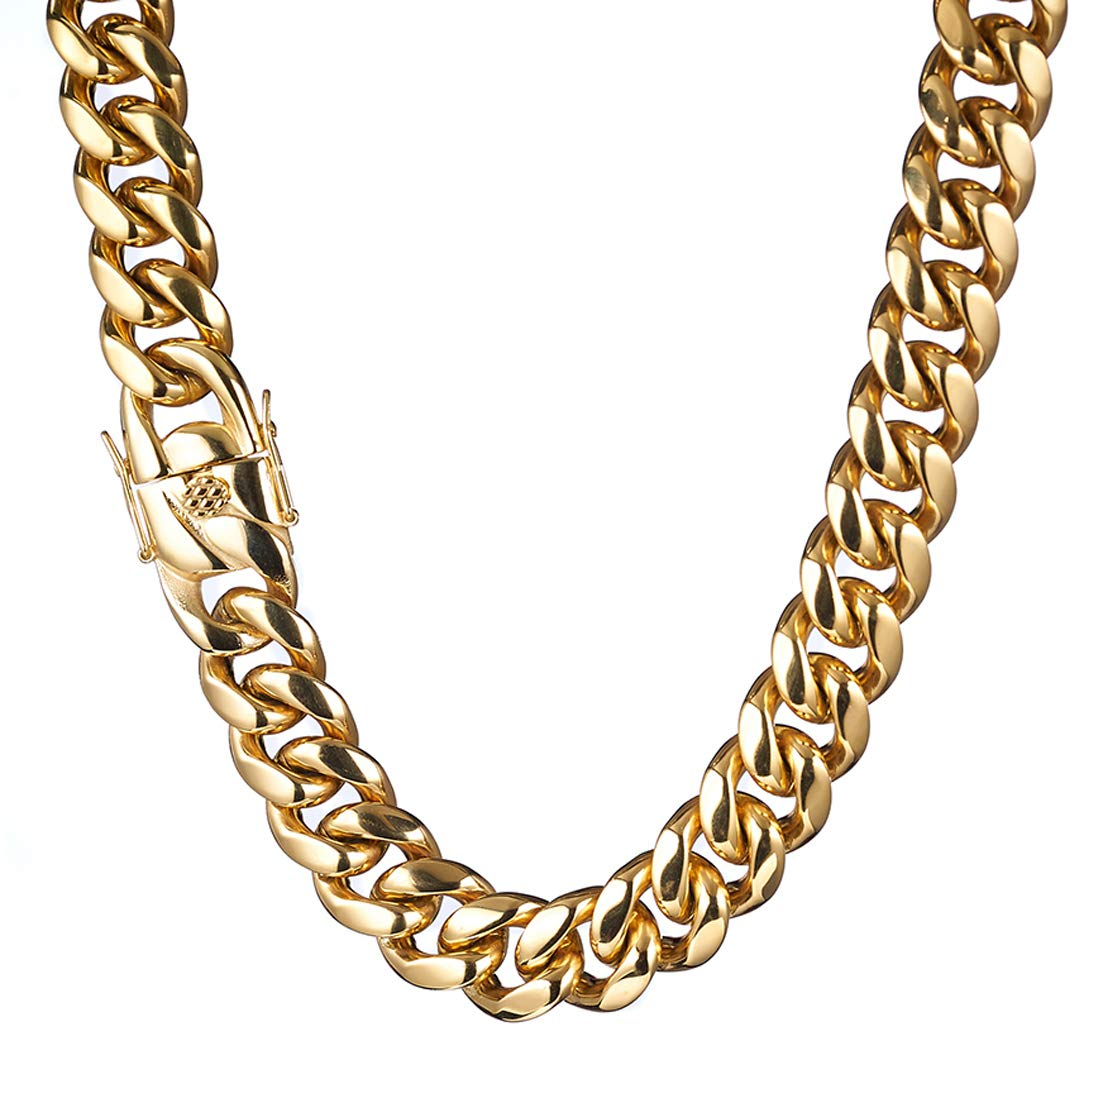 Fashion Mens Miami Cuban Link Chain 18K Gold Plated Stainless Steel Curb Choker Necklace 6mm-18mm Thick